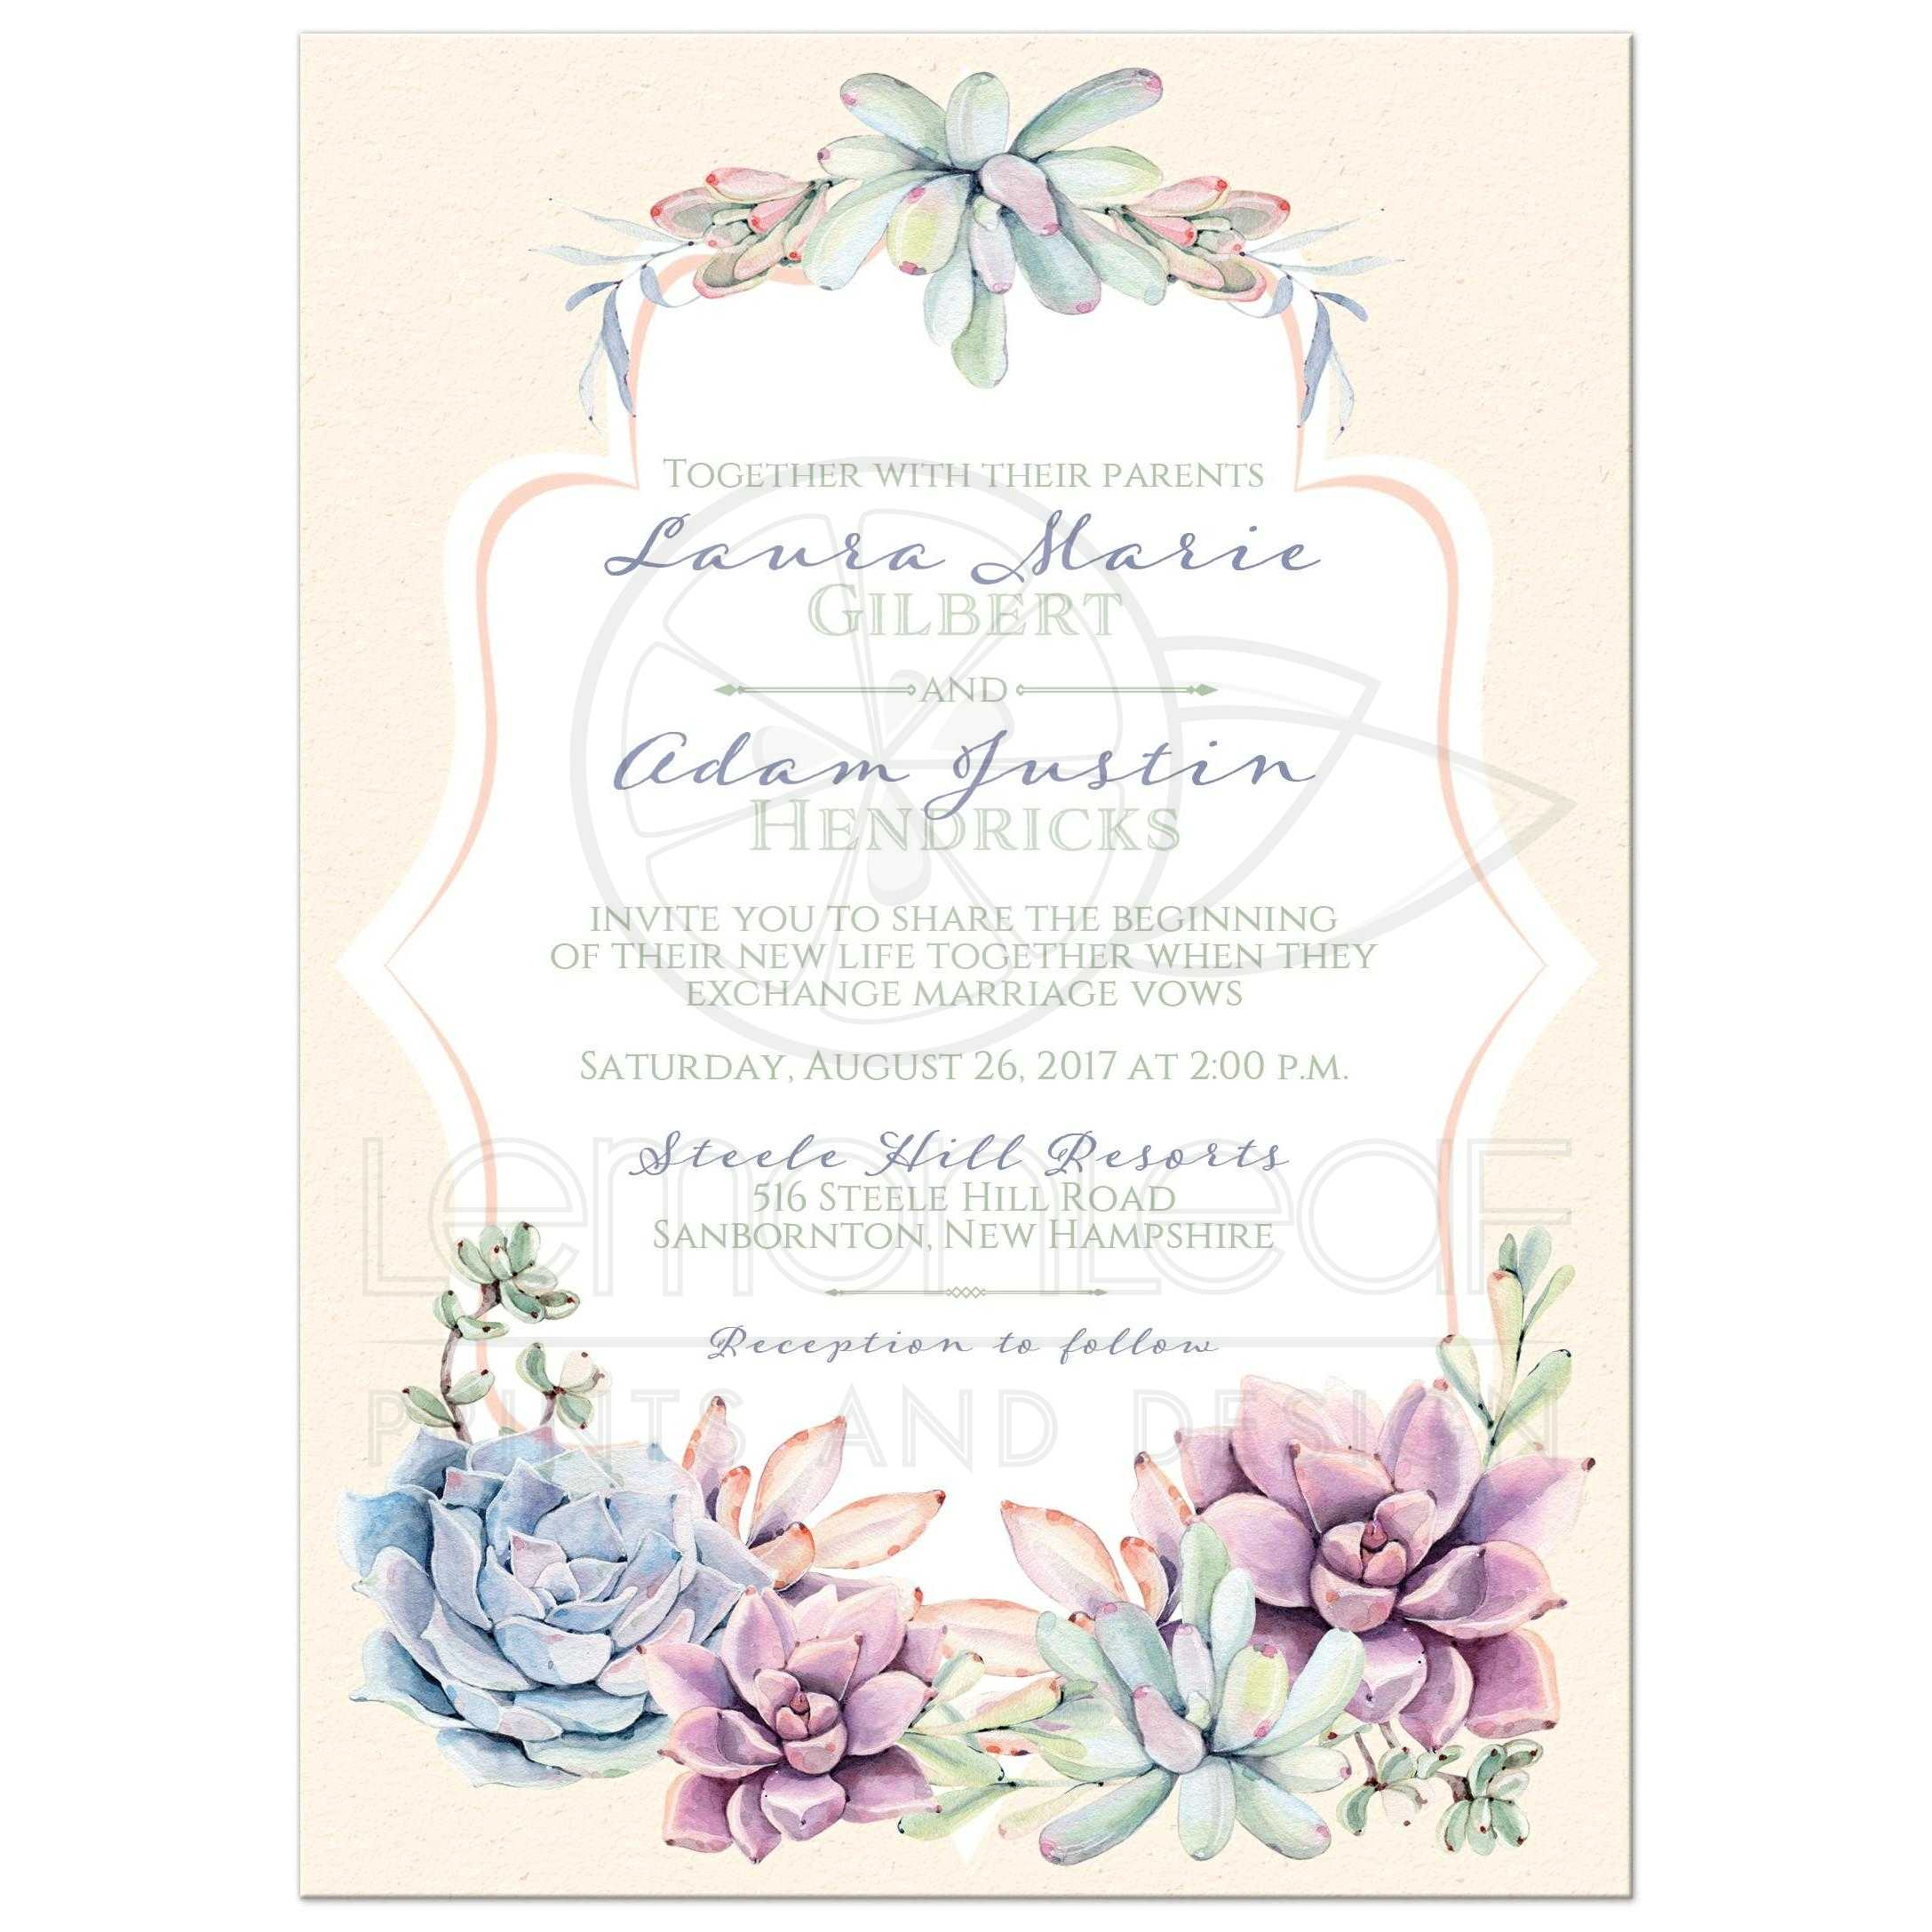 Pastels Peach, Green, Blue, Pink And Lavender Wedding Invitation With Cacti  And Succulents ...